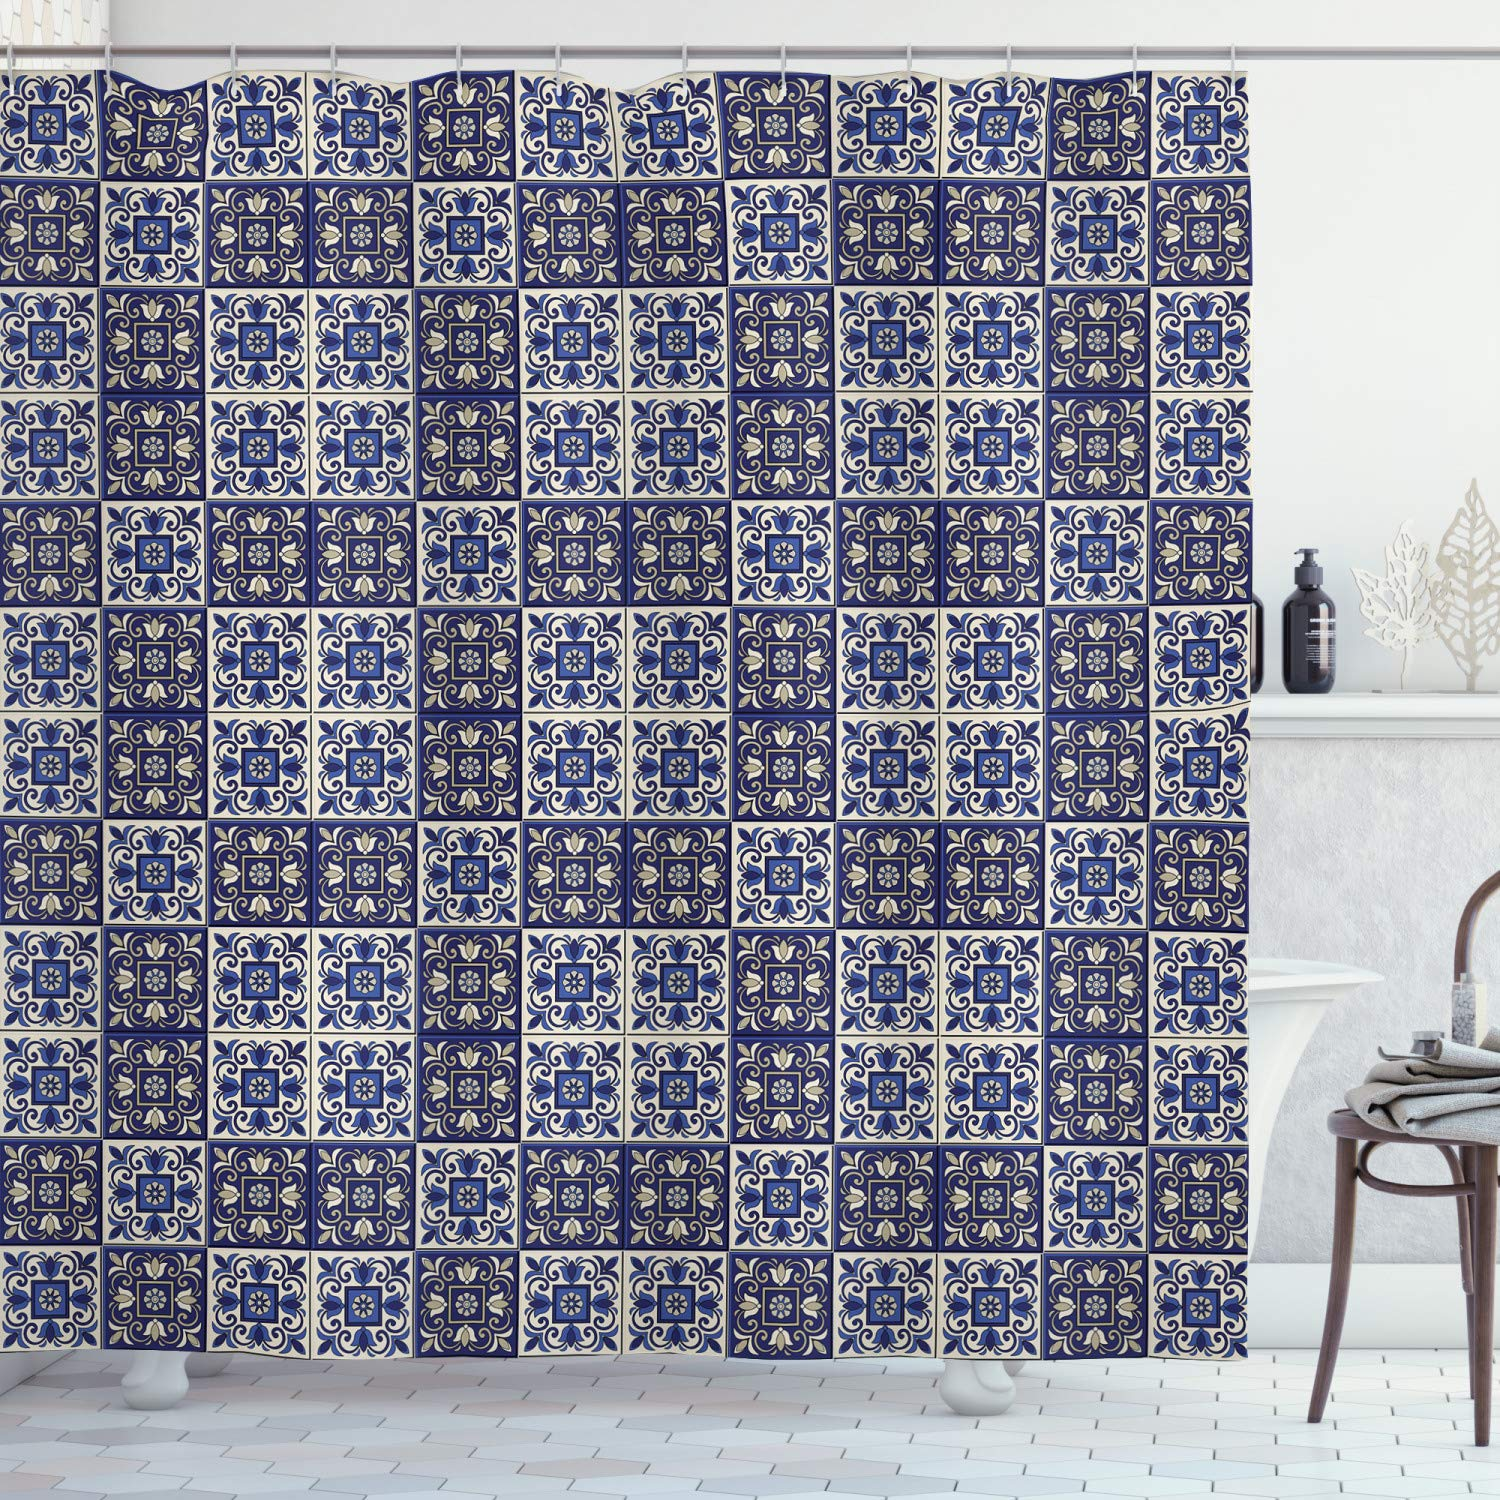 """Ambesonne Moroccan Shower Curtain, Squares with Portuguese Azulejo Ornaments Arrangement Floral Pattern Leaves, Cloth Fabric Bathroom Decor Set with Hooks, 84"""" Long Extra, Navy Blue"""